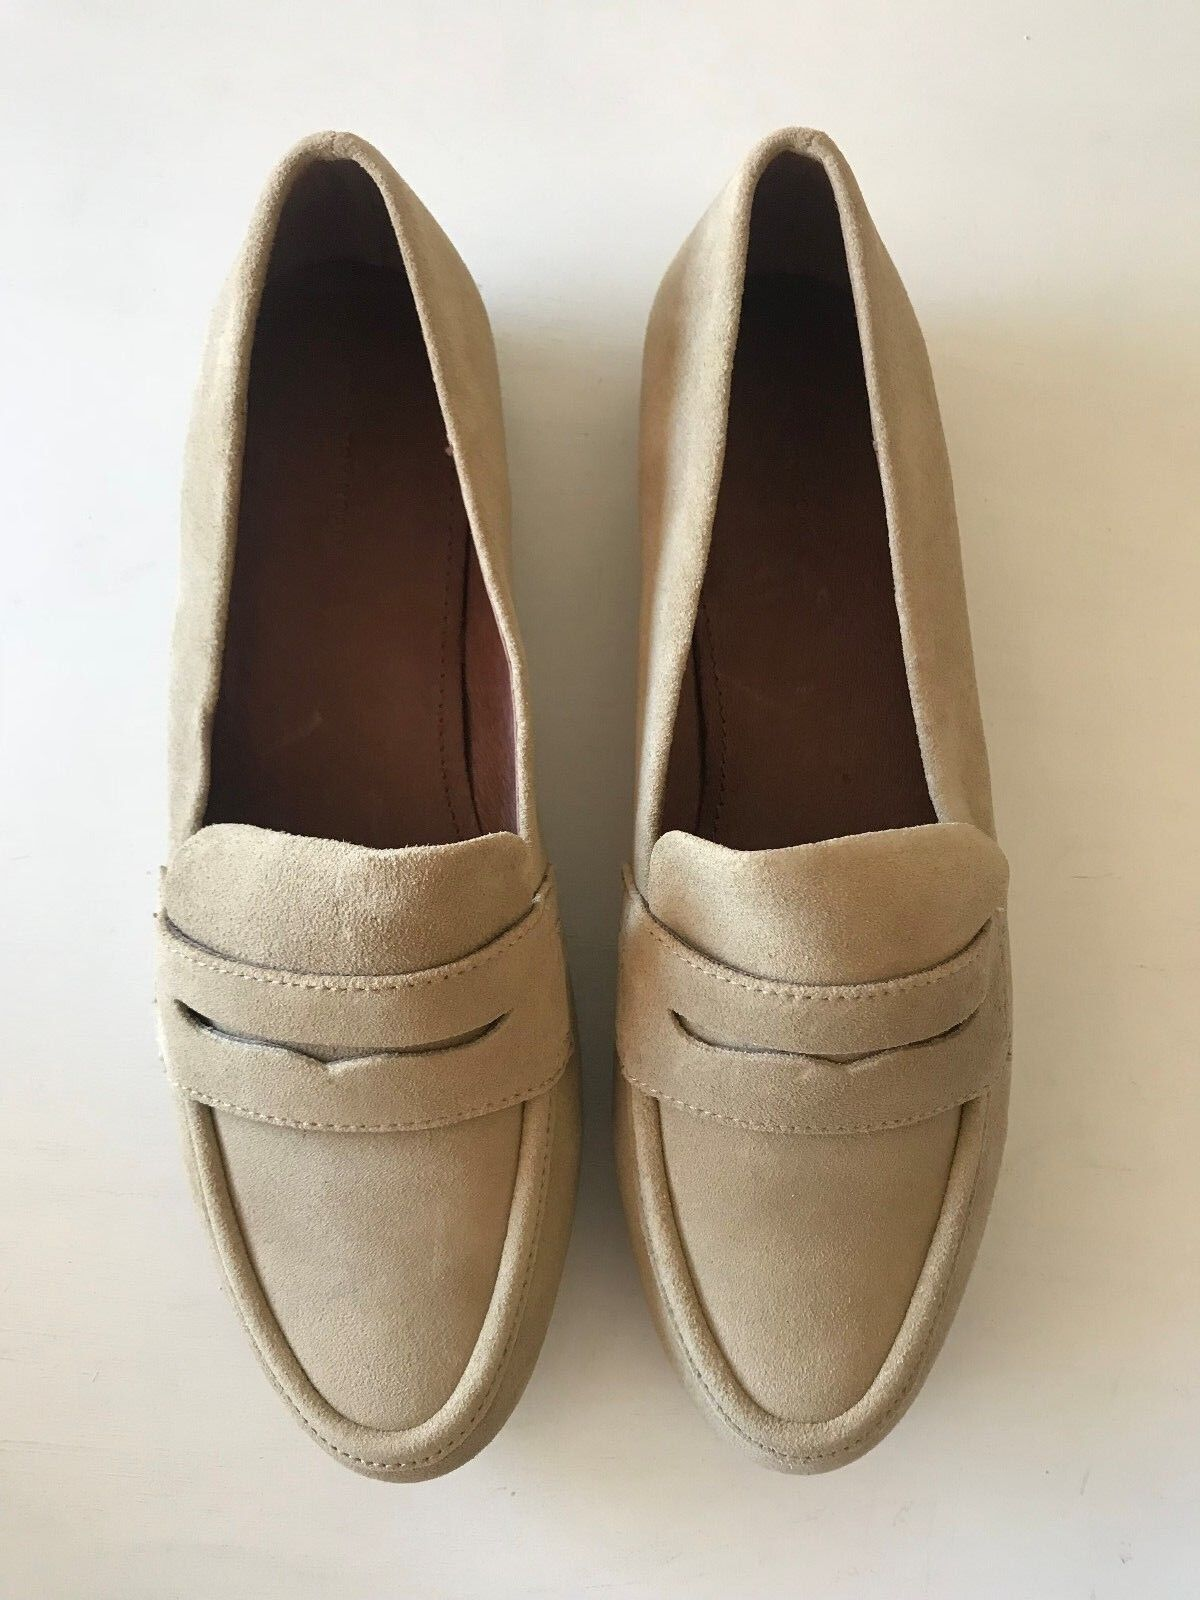 [COUNTRY ROAD] NEW SZ 40,41 [CR LOVE] renee loafer in sand - 9,10